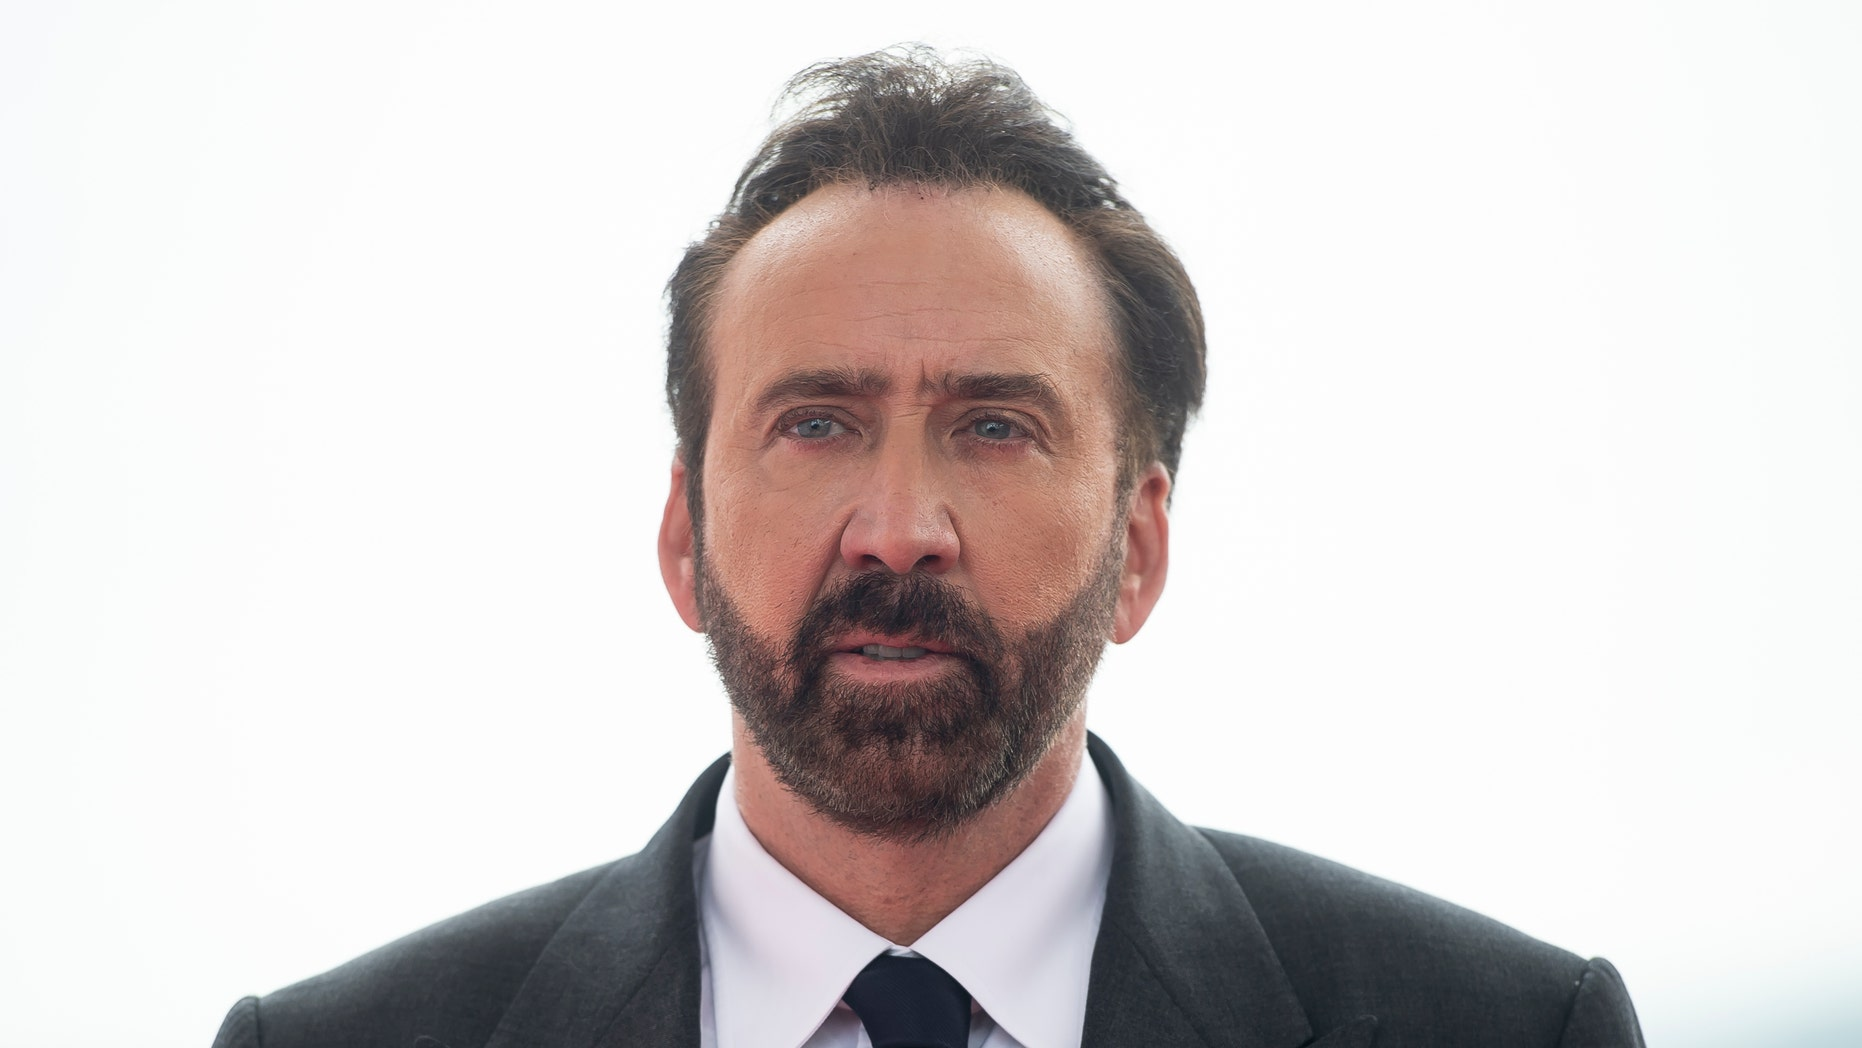 Nicolas Cage Files for Annulment After 4-Day Marriage to Erika Koike